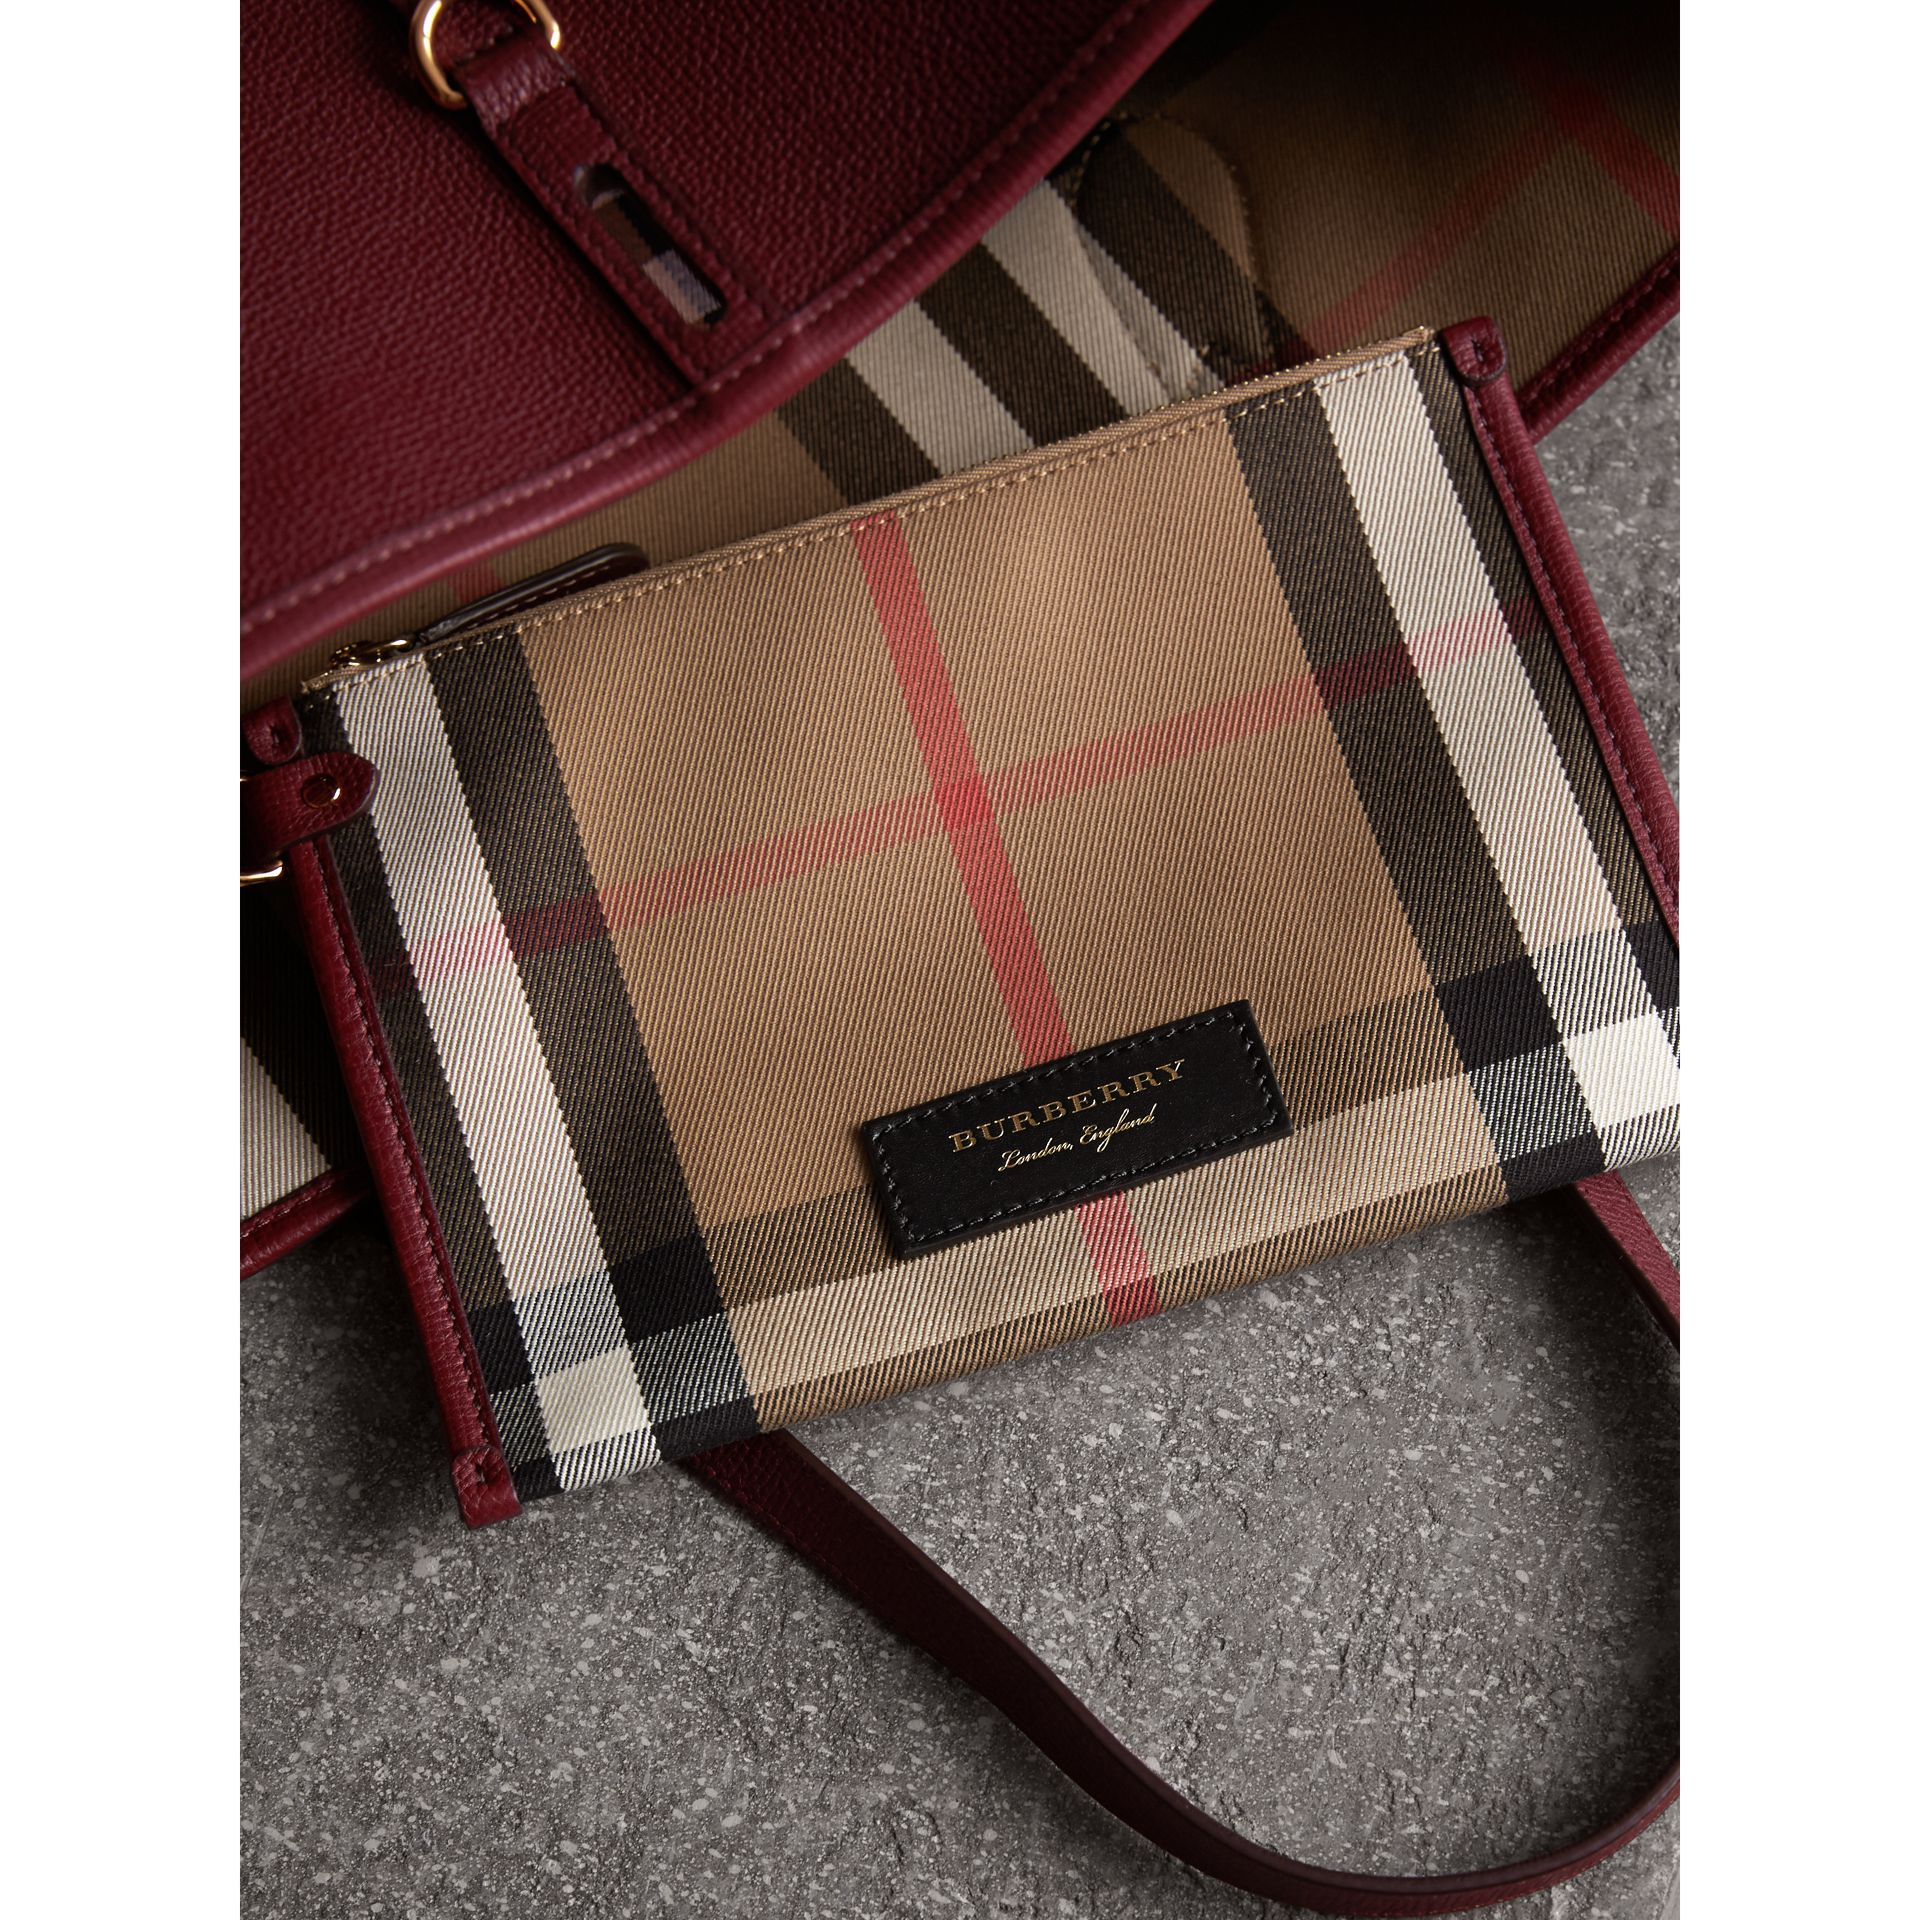 Medium Grainy Leather Tote Bag in Mahogany Red - Women | Burberry Canada - gallery image 5